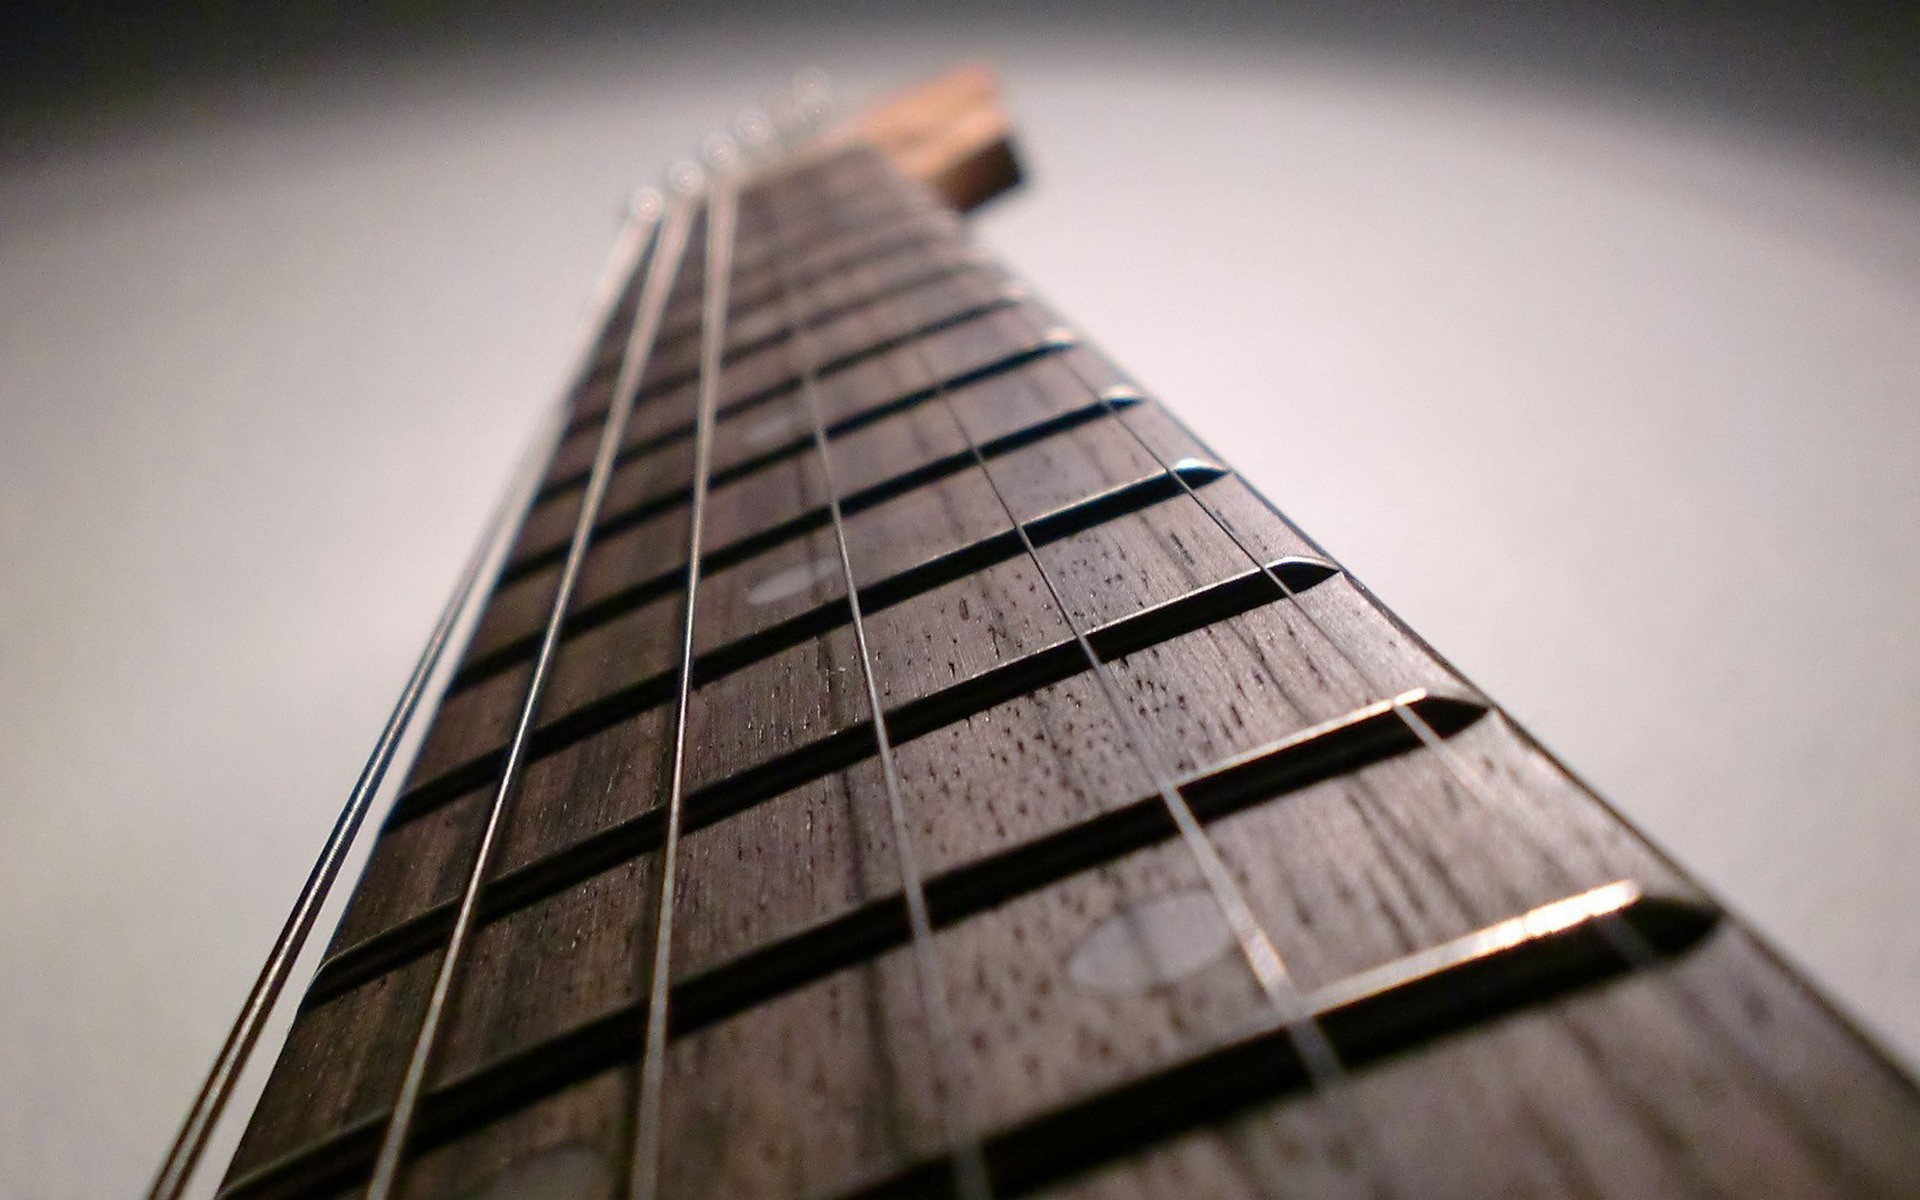 guitar-strings-close-up-wallpapers_34782_1920x1200